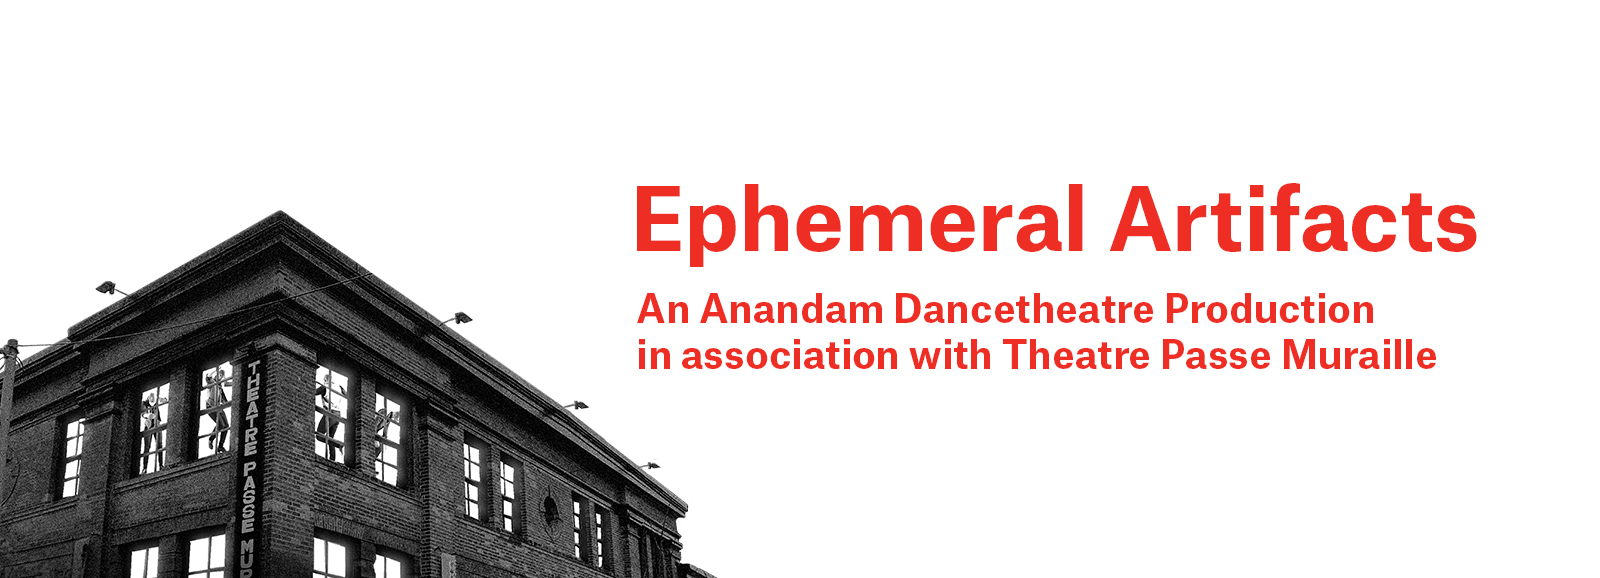 Ephemeral Artifacts. An Anandam Dancetheatre production in association with Theatre Passe Muraille